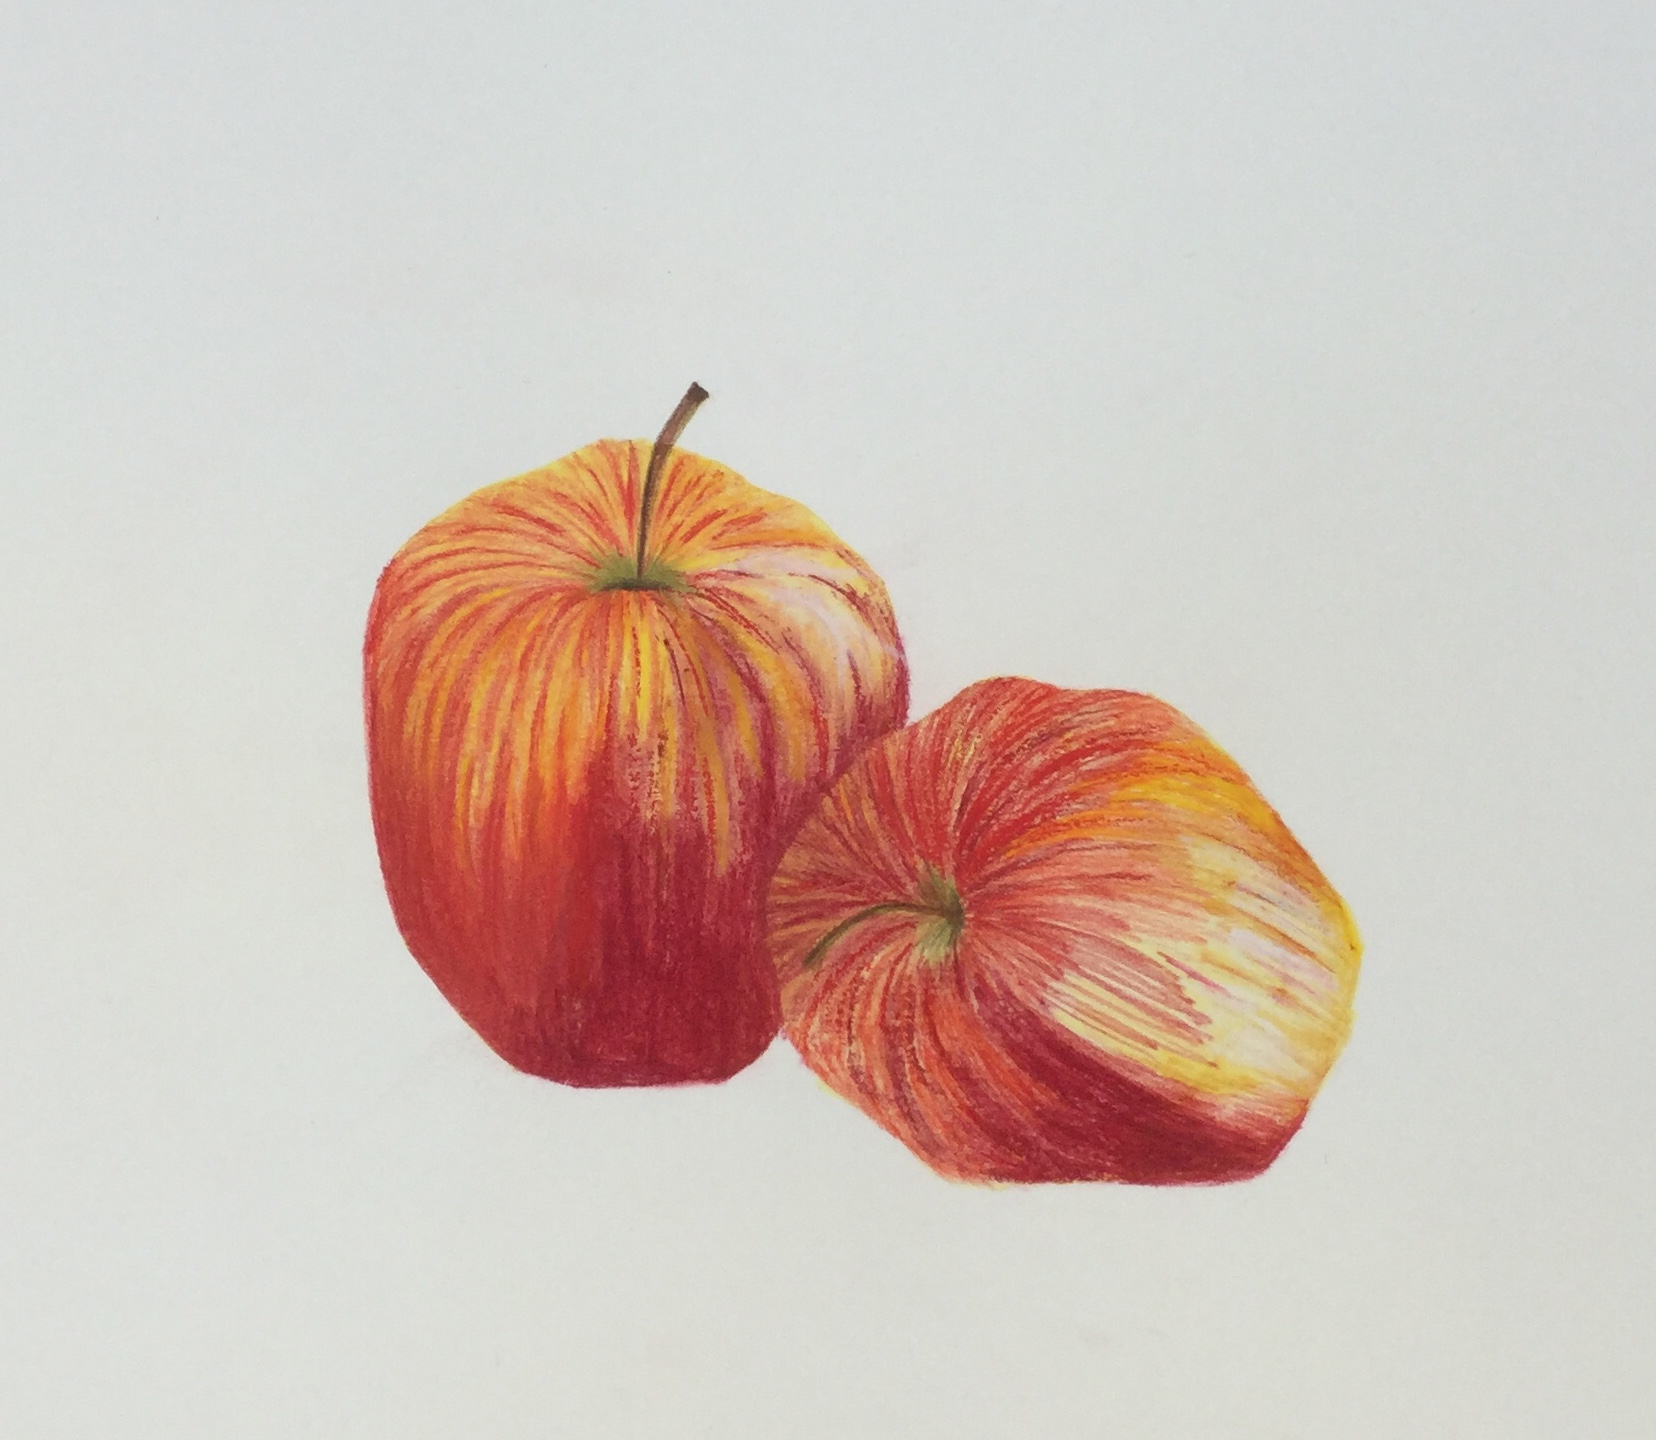 Copy of Apple illustration by Briony Dixon